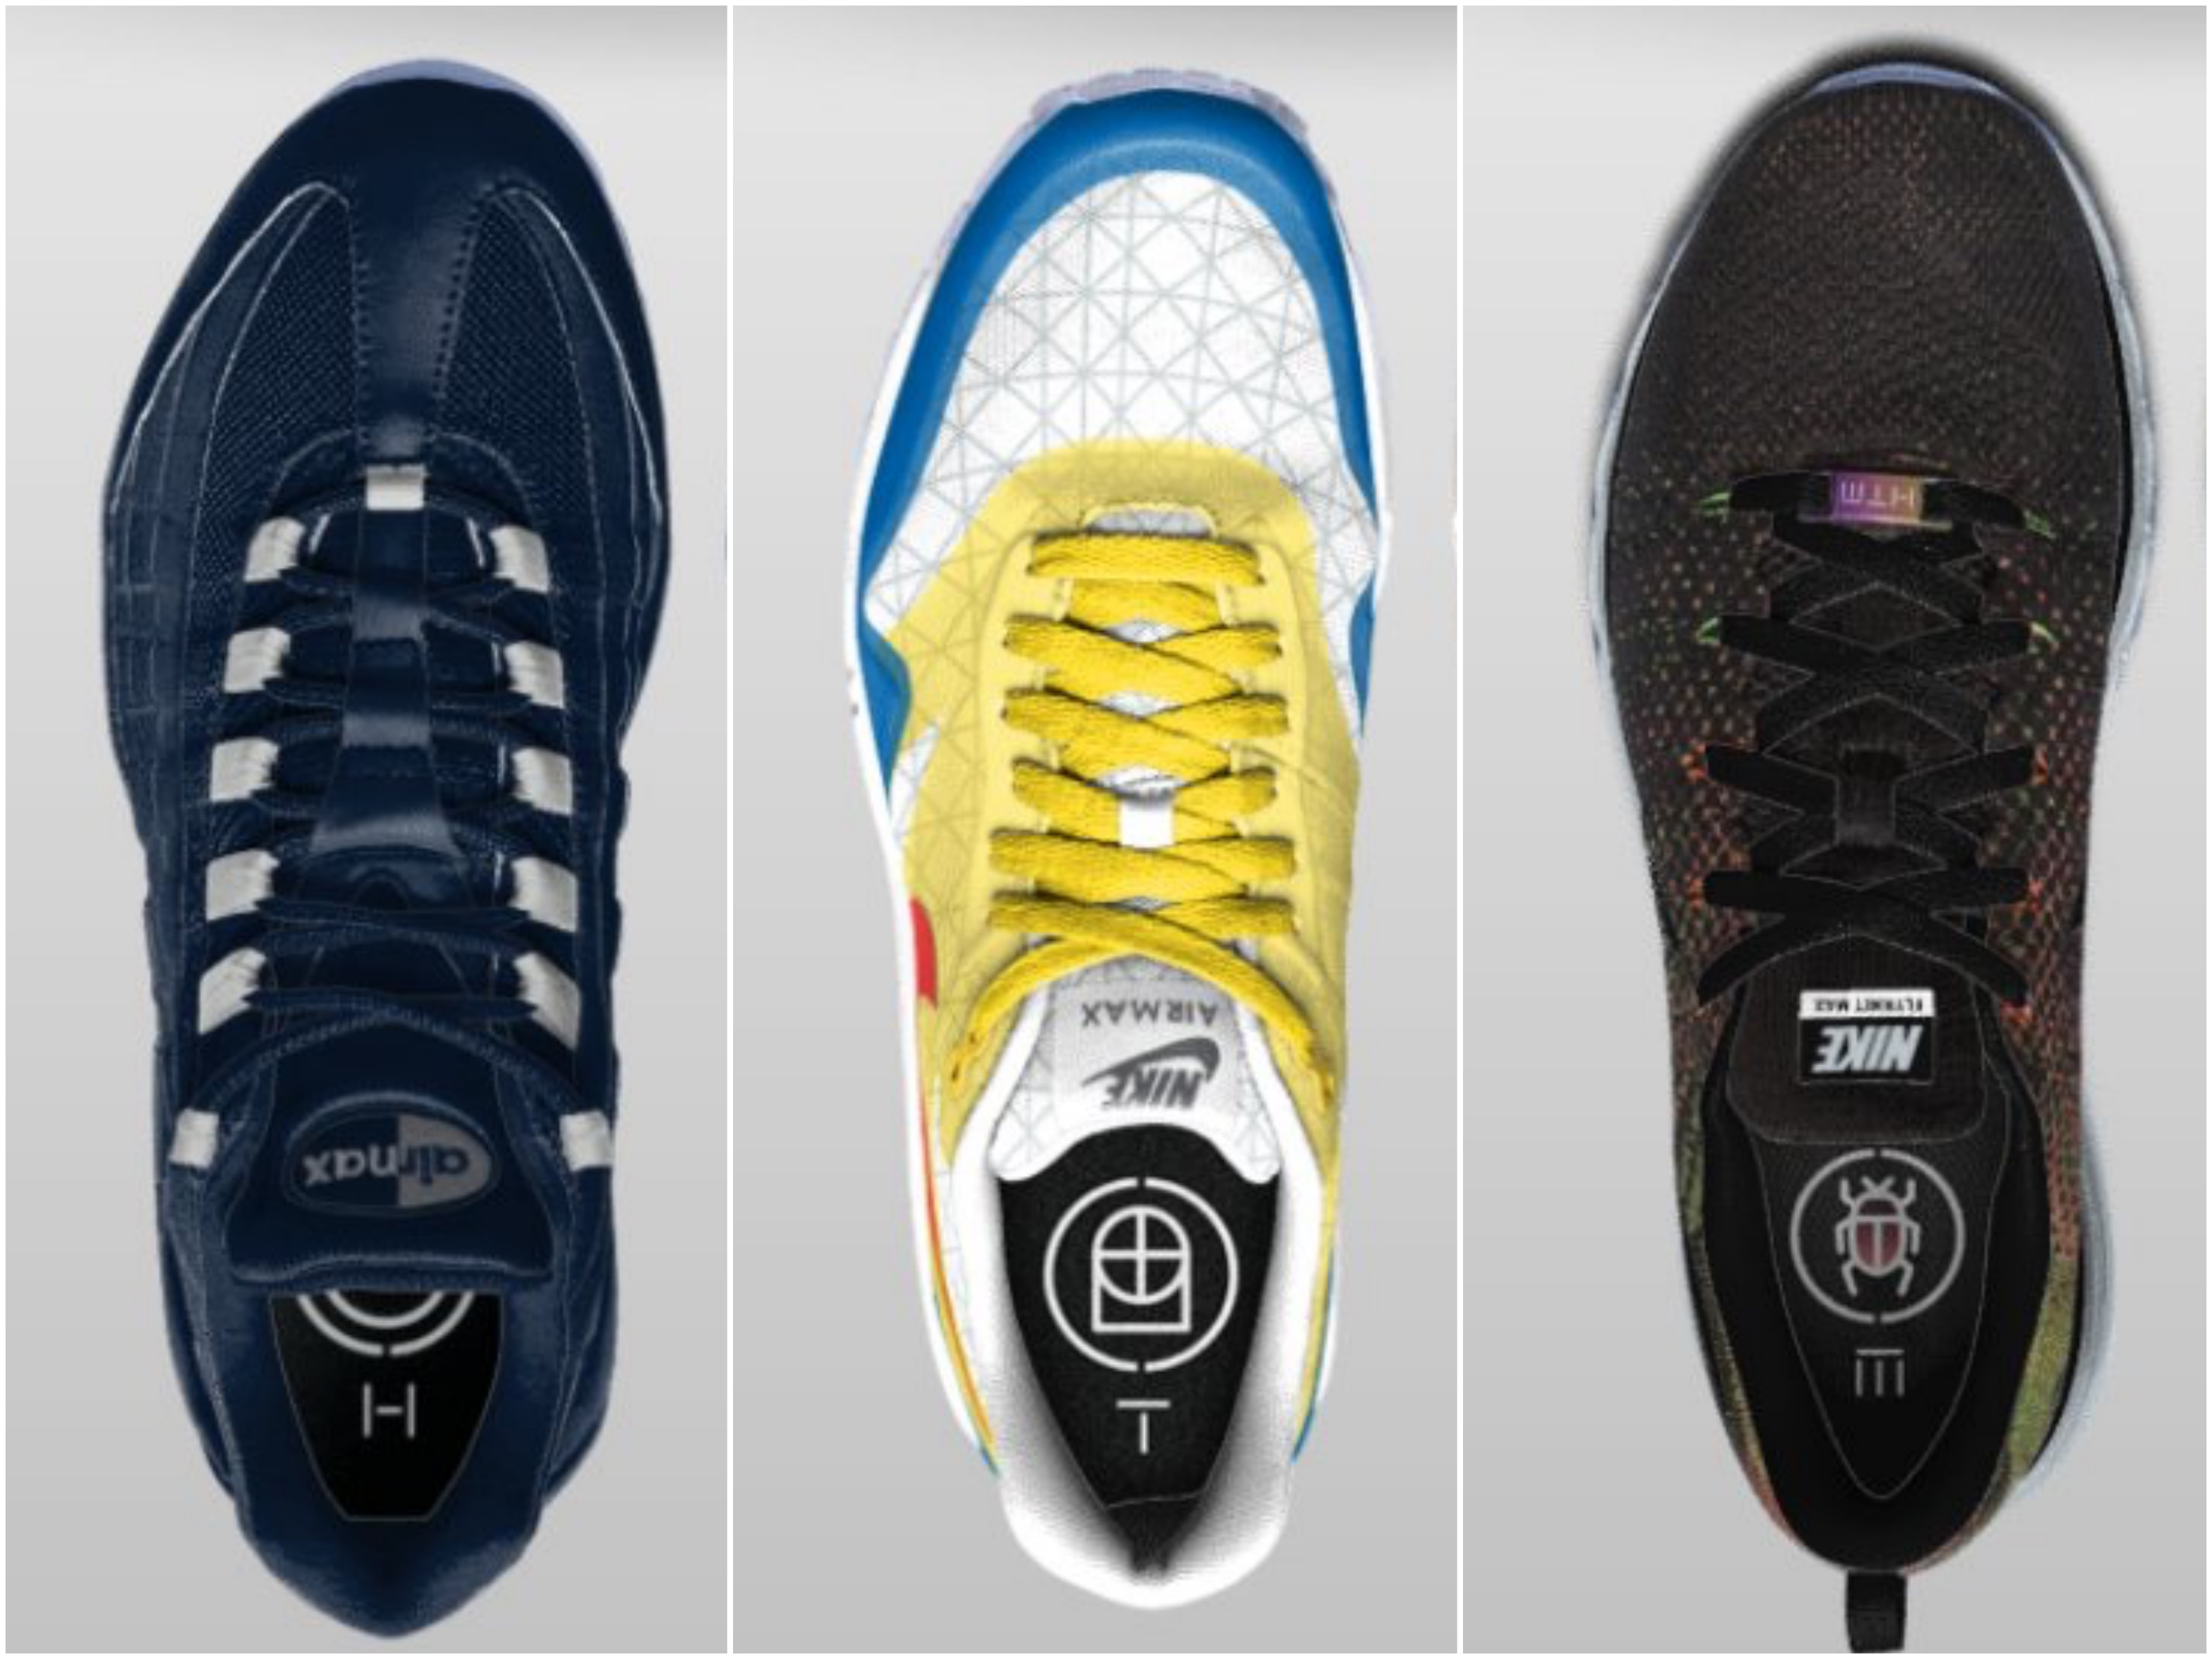 Customize Your Own HTM Air Max Sneaker on NikeiD - WearTesters d600a16ab569